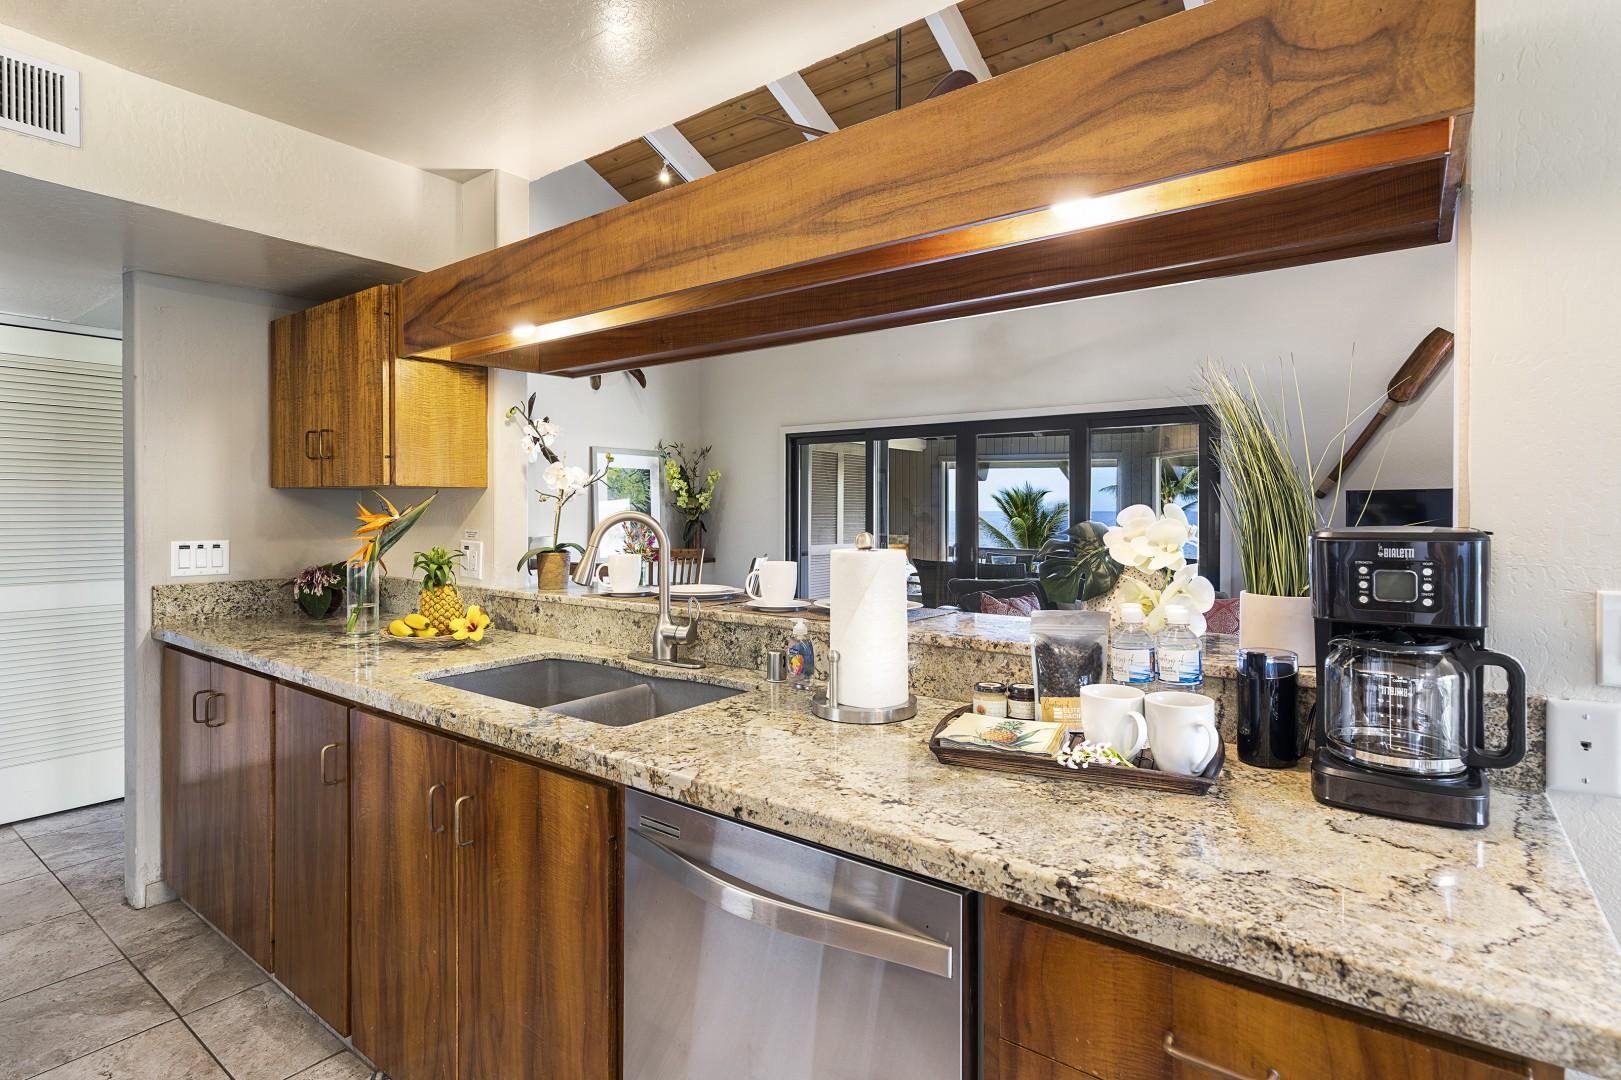 Koa wood cabinetry and granite counters